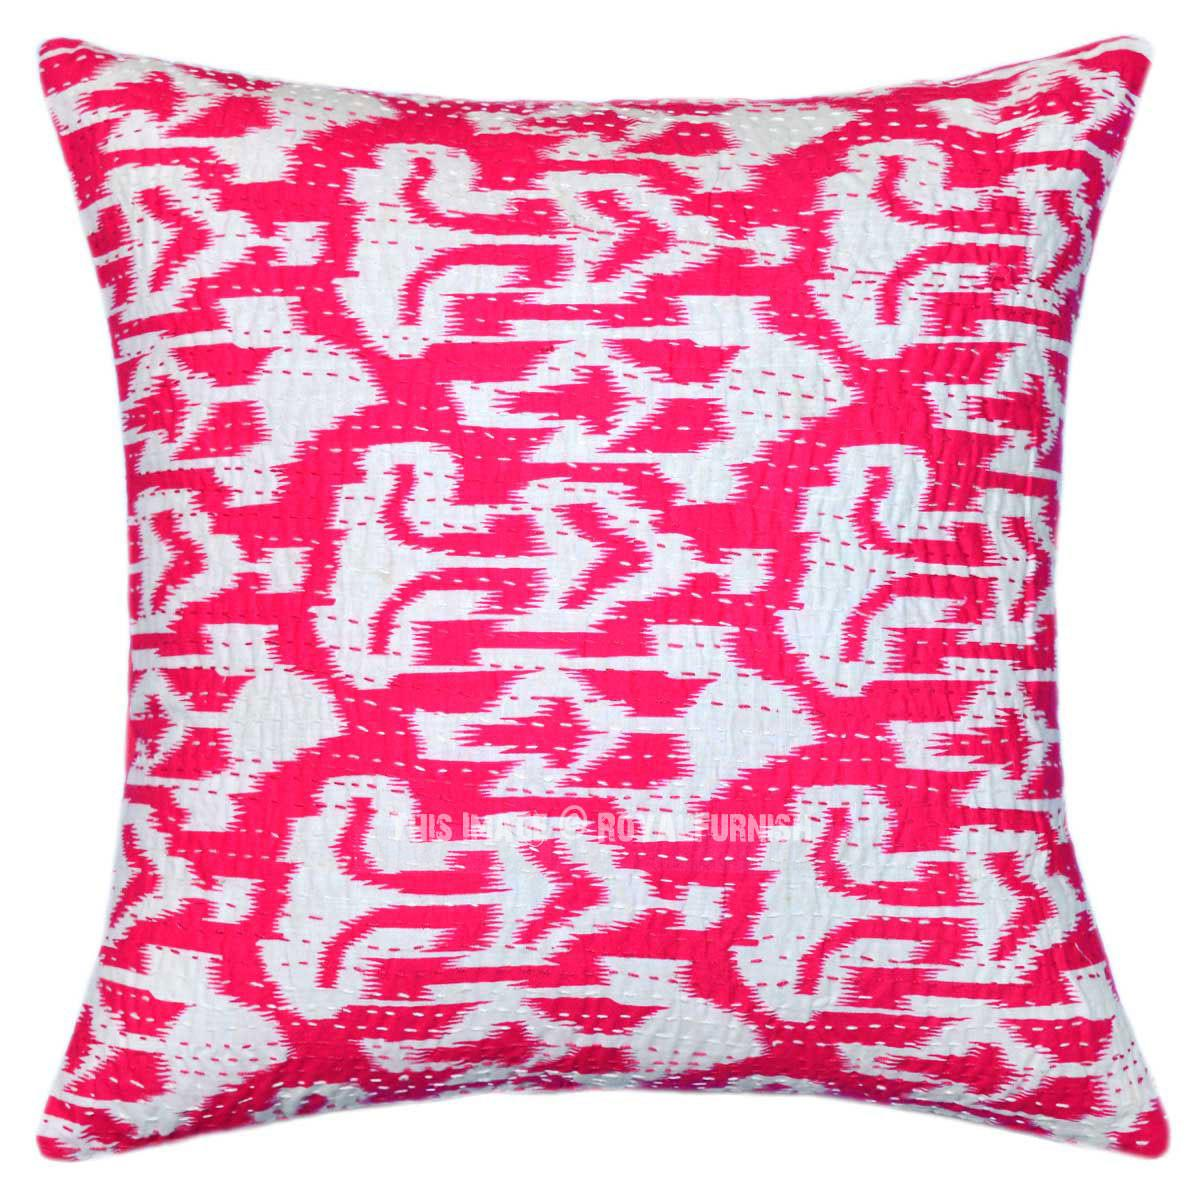 Pink Unique One Kind Handmade Zig Zag Ikat Pillow